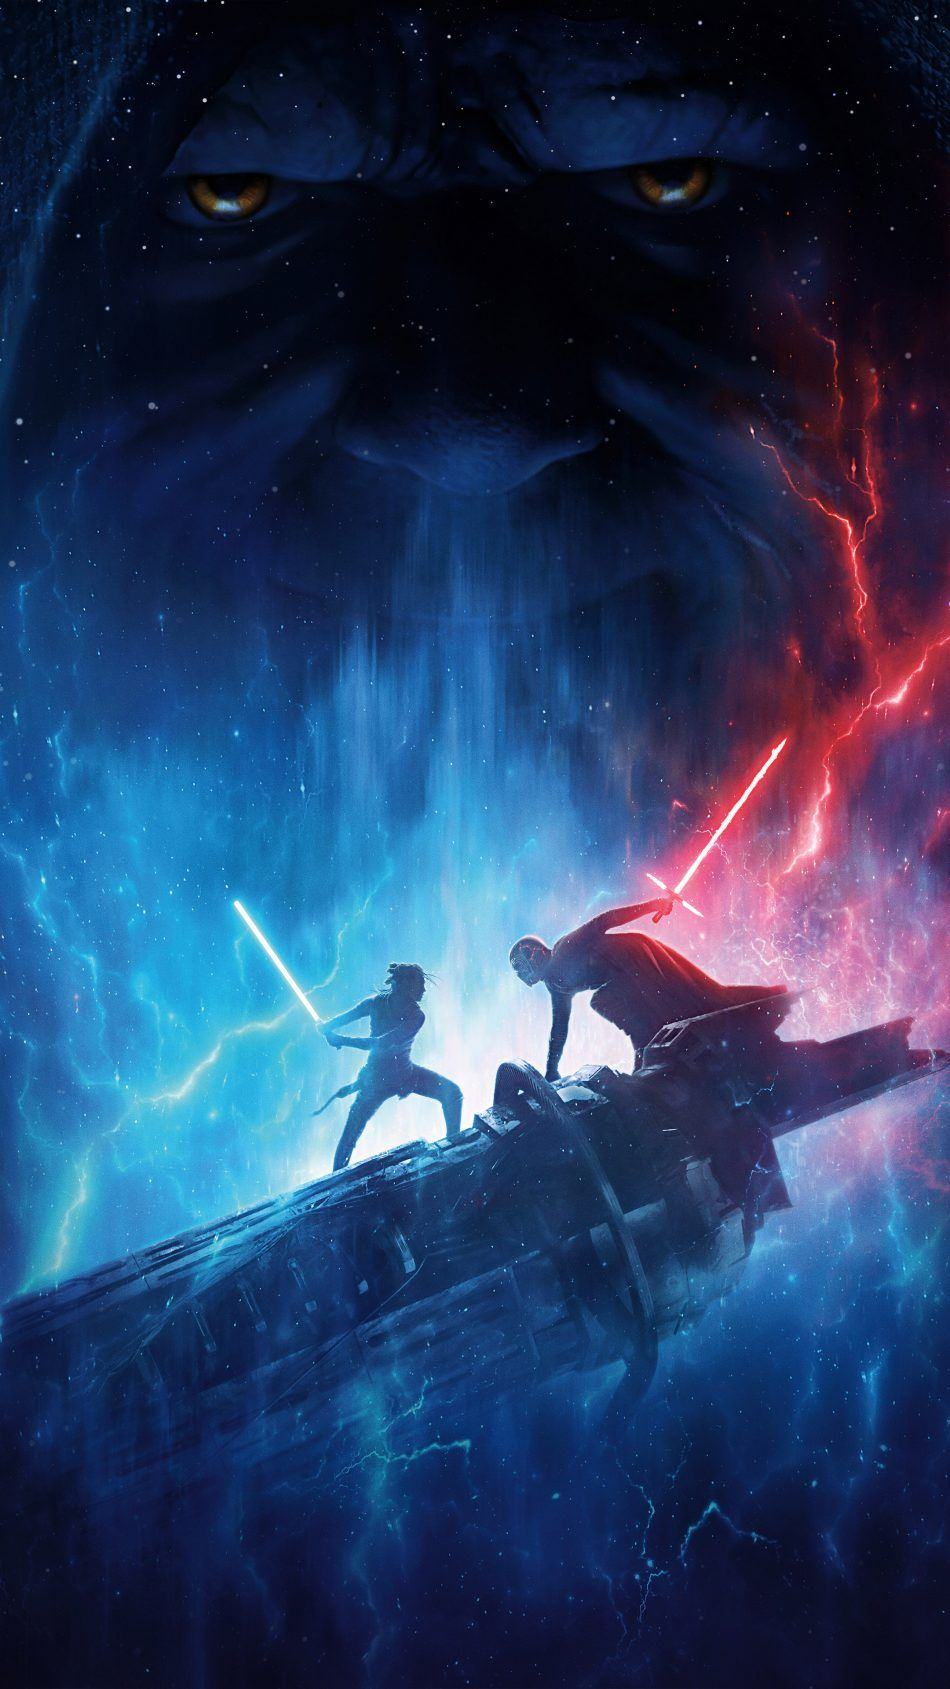 Star Wars The Rise Of Skywalker 2019 4k Ultra Hd Mobile Wallpaper Star Wars Wallpaper Iphone Star Wars Pictures Star Wars Wallpaper